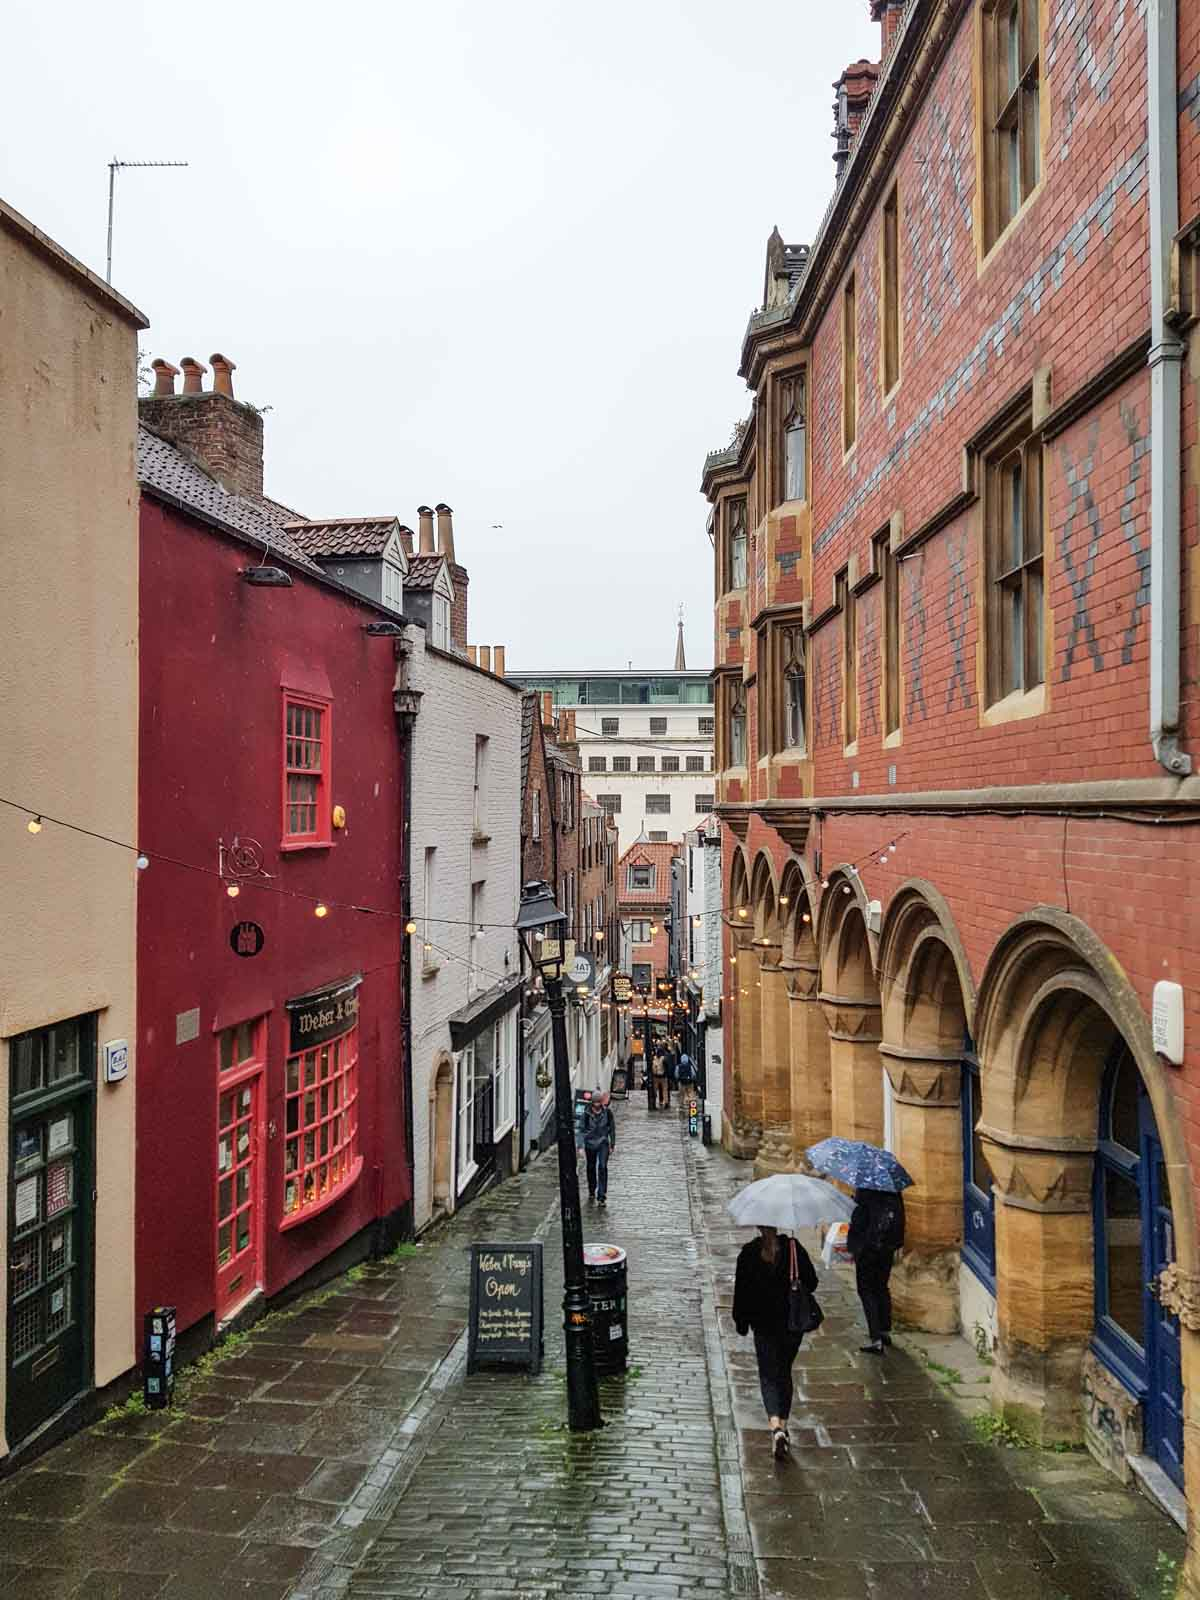 Christmas Steps, de leukste dingen om te doen in Bristol - Map of Joy